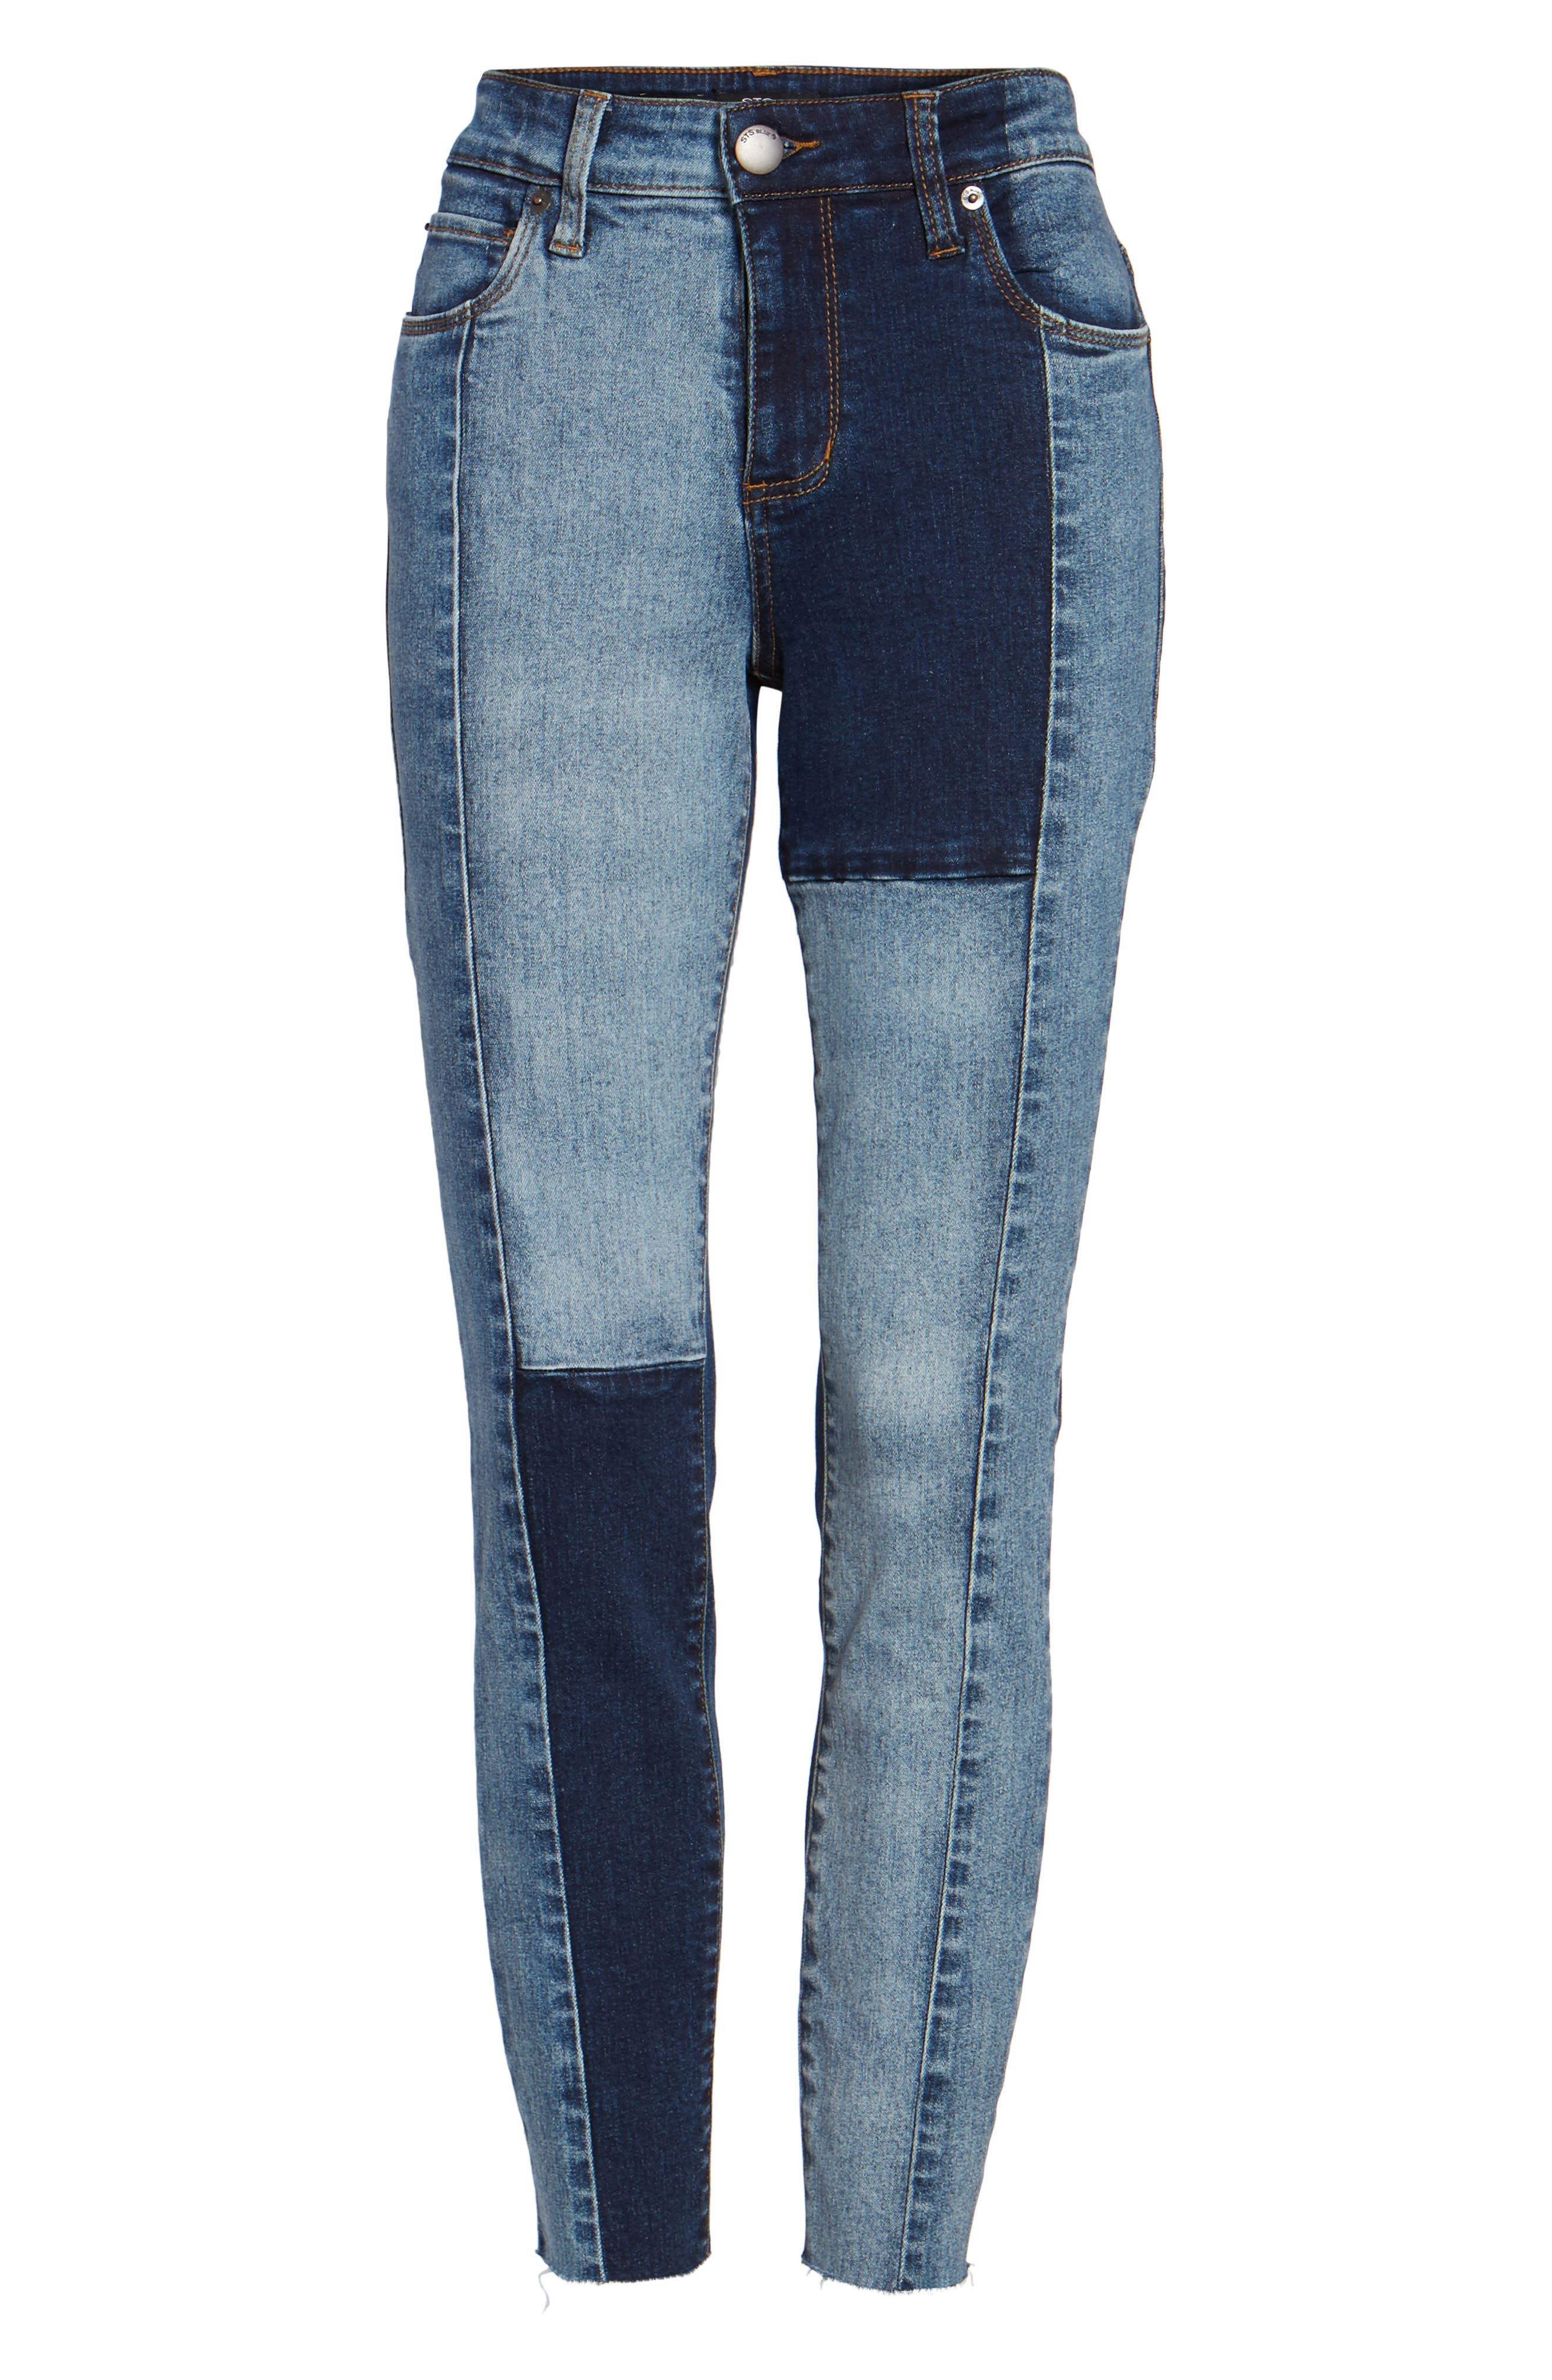 Piper Colorblock Ankle Skinny Jeans,                             Alternate thumbnail 6, color,                             400